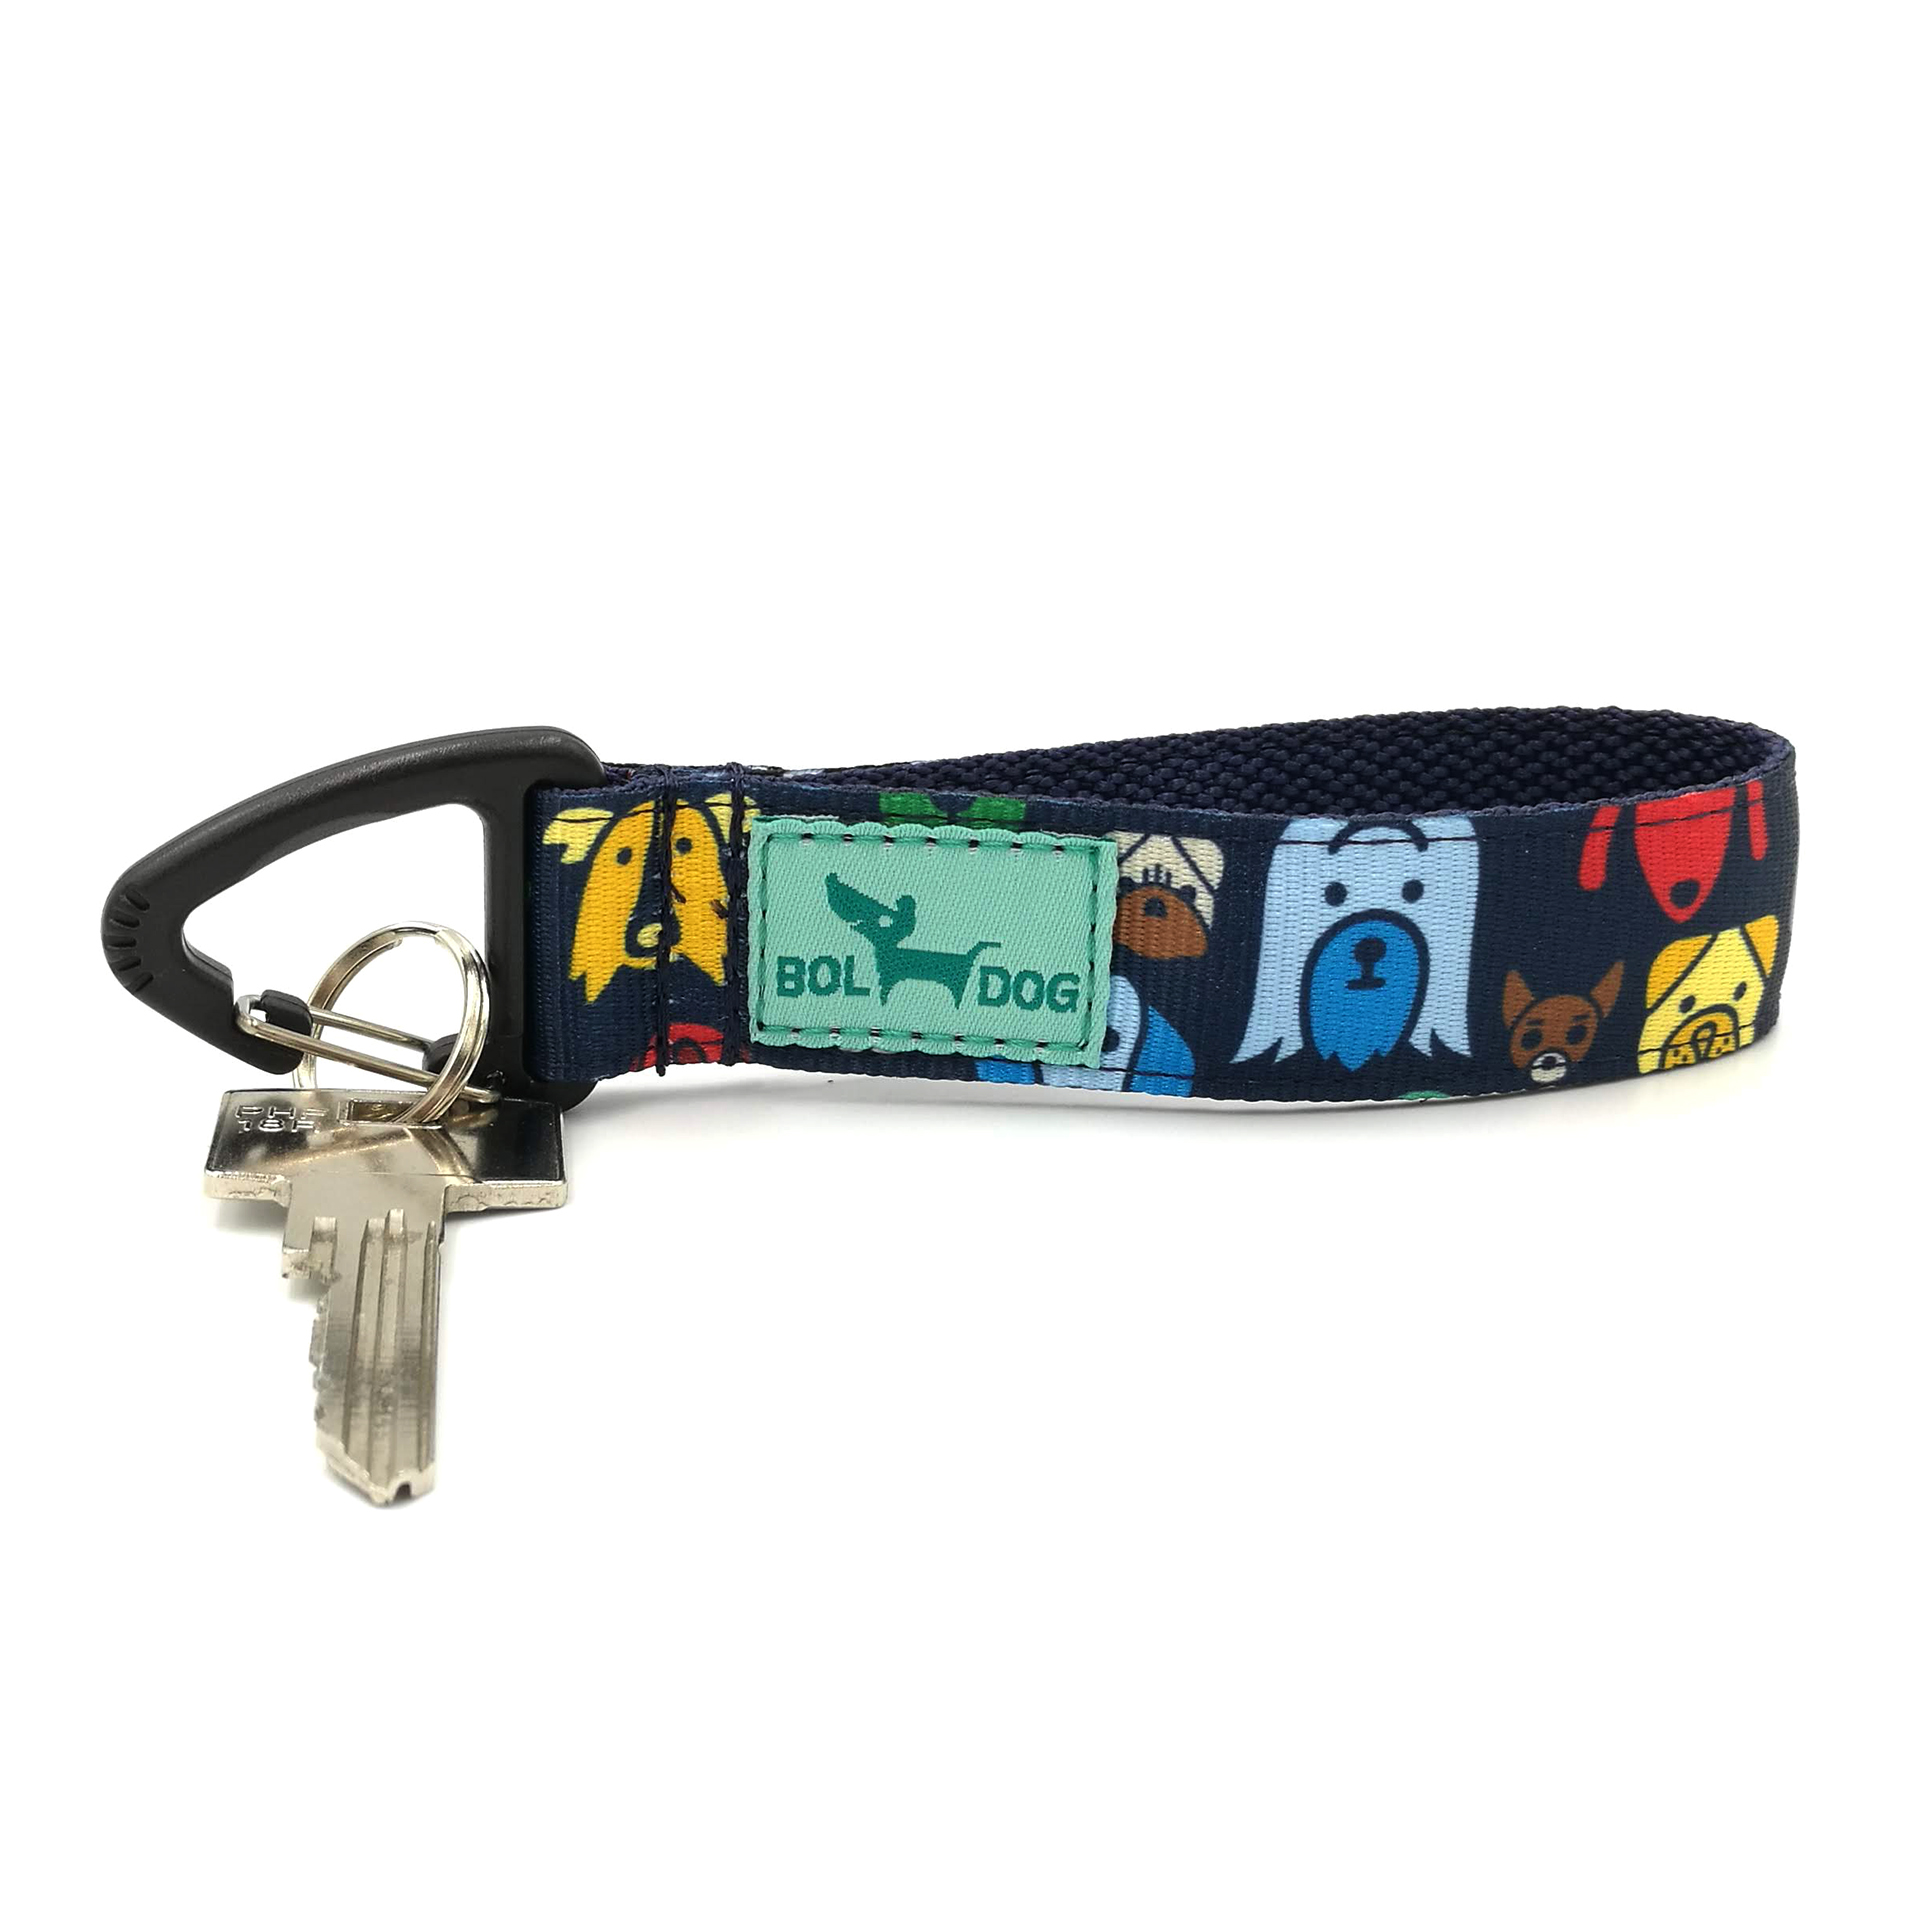 Pack key holder